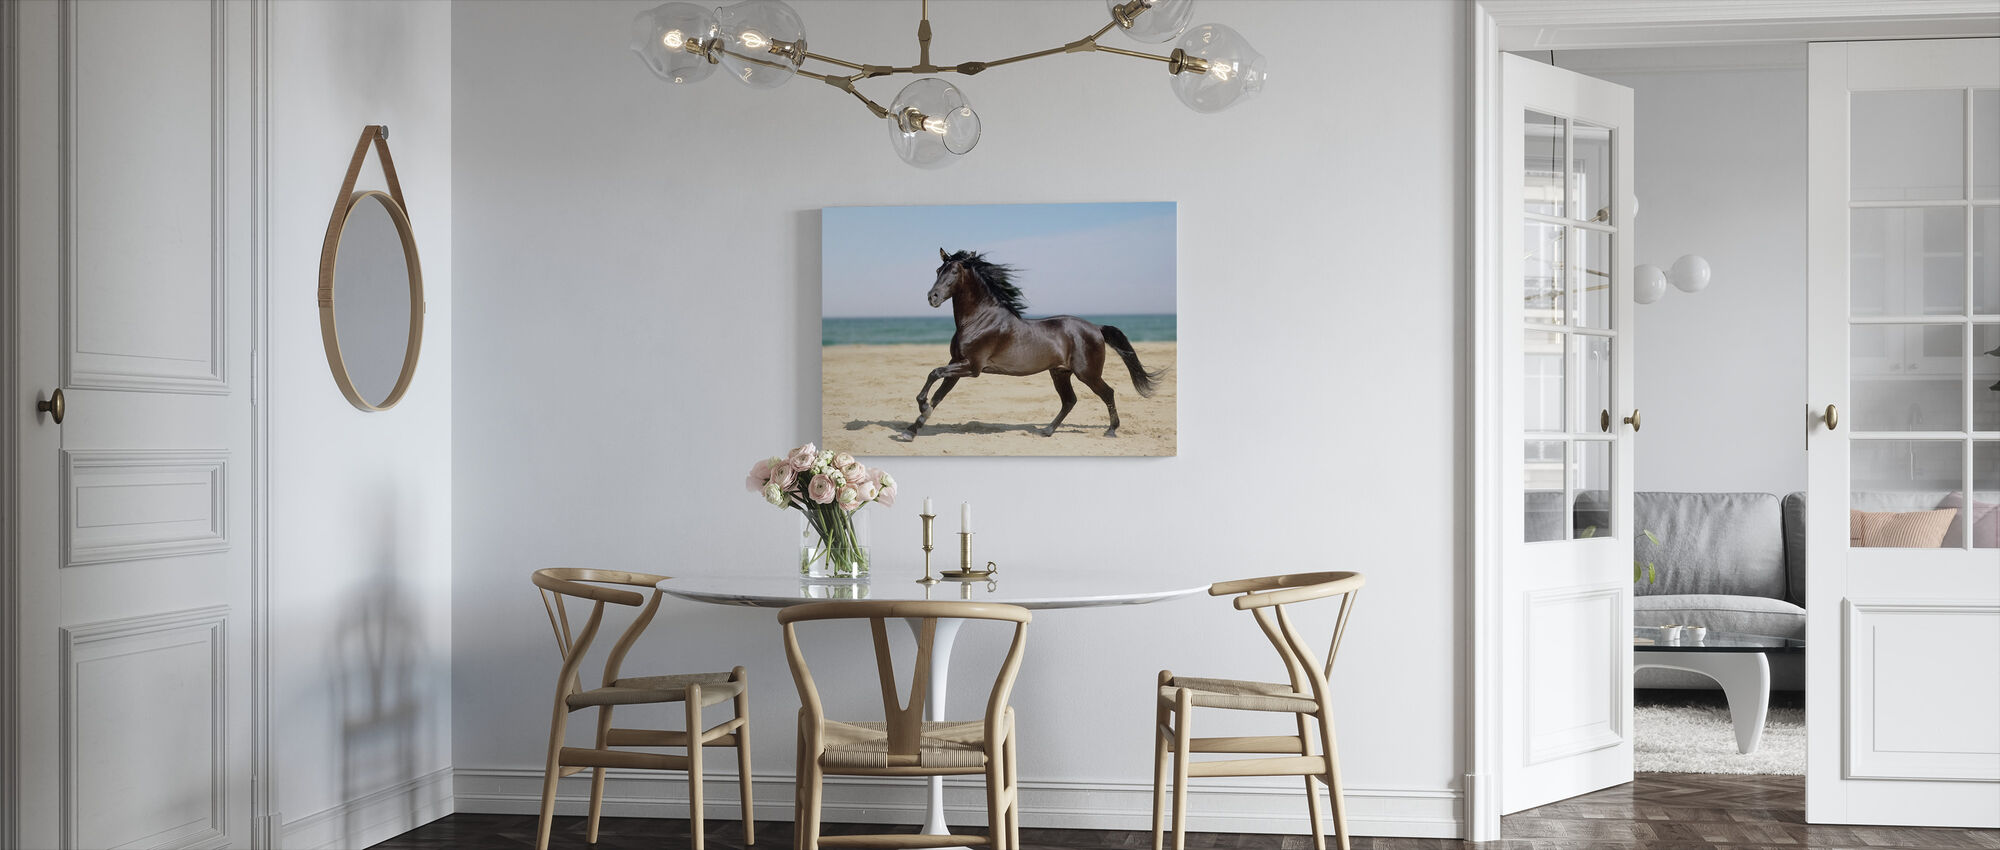 Beach Horse - Canvas print - Kitchen